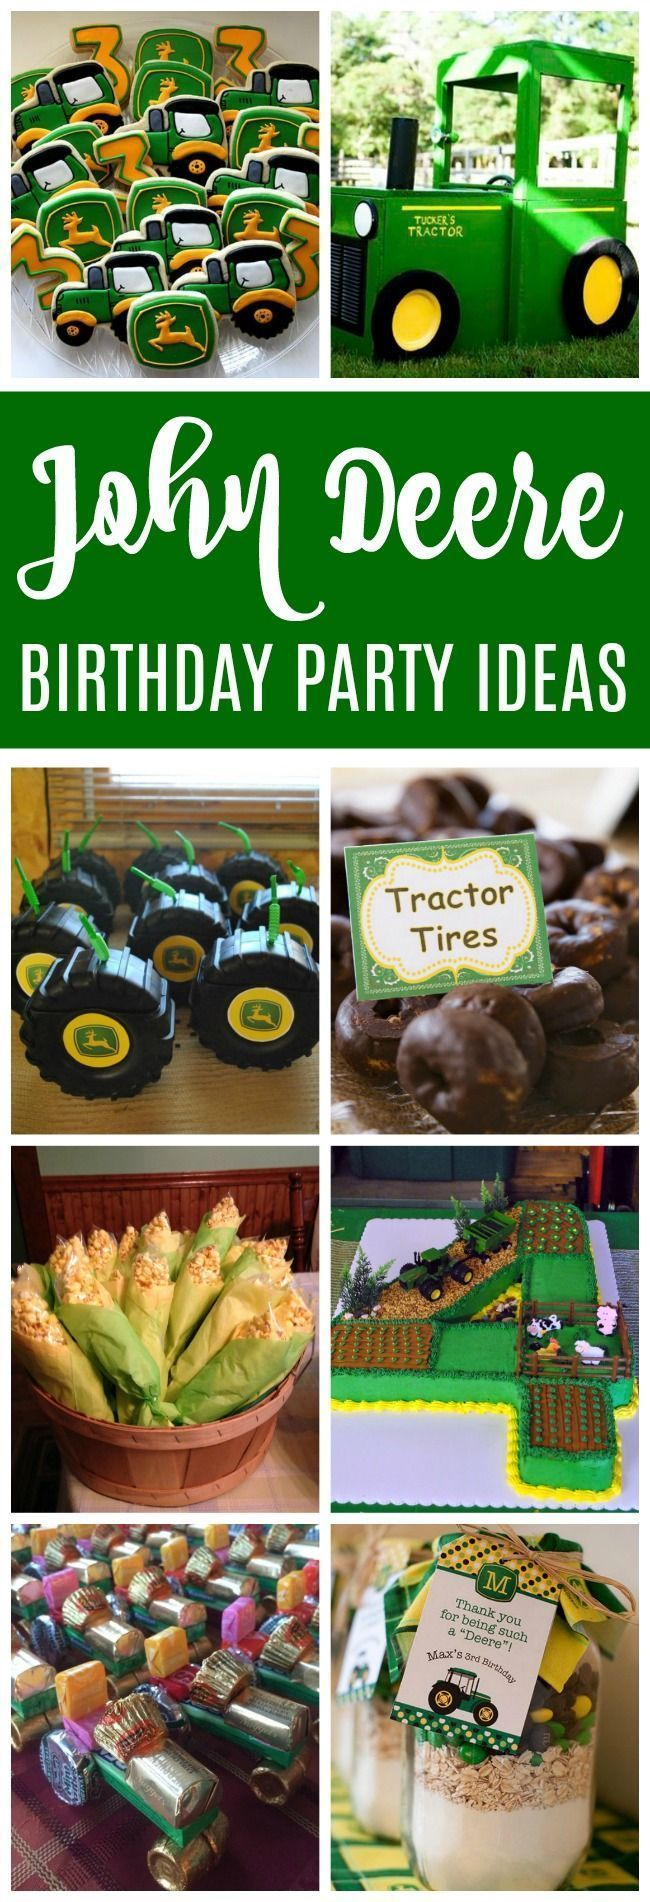 20 John Deere Tractor Birthday Party Ideas (scheduled via http://www.tailwindapp.com?utm_source=pinterest&utm_medium=twpin&utm_content=post190672655&utm_campaign=scheduler_attribution)